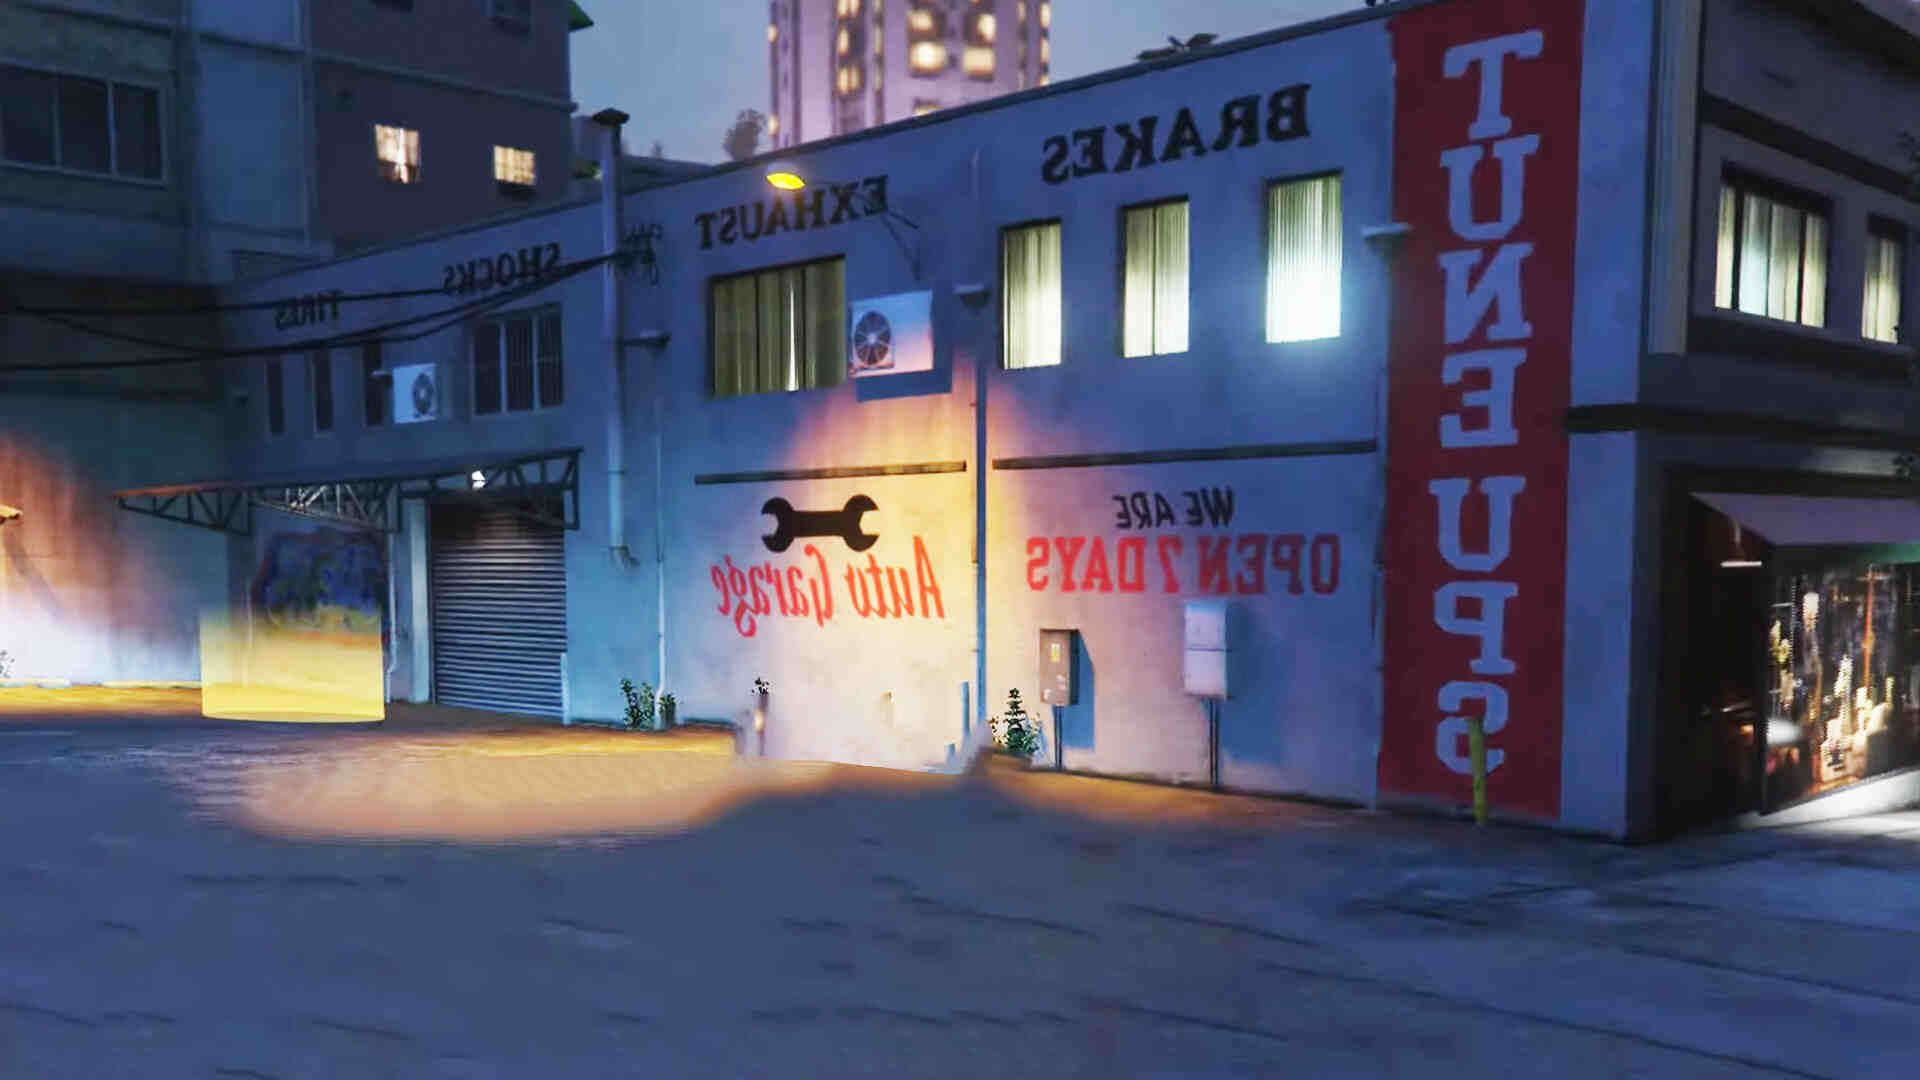 How to sell garages in gta 5